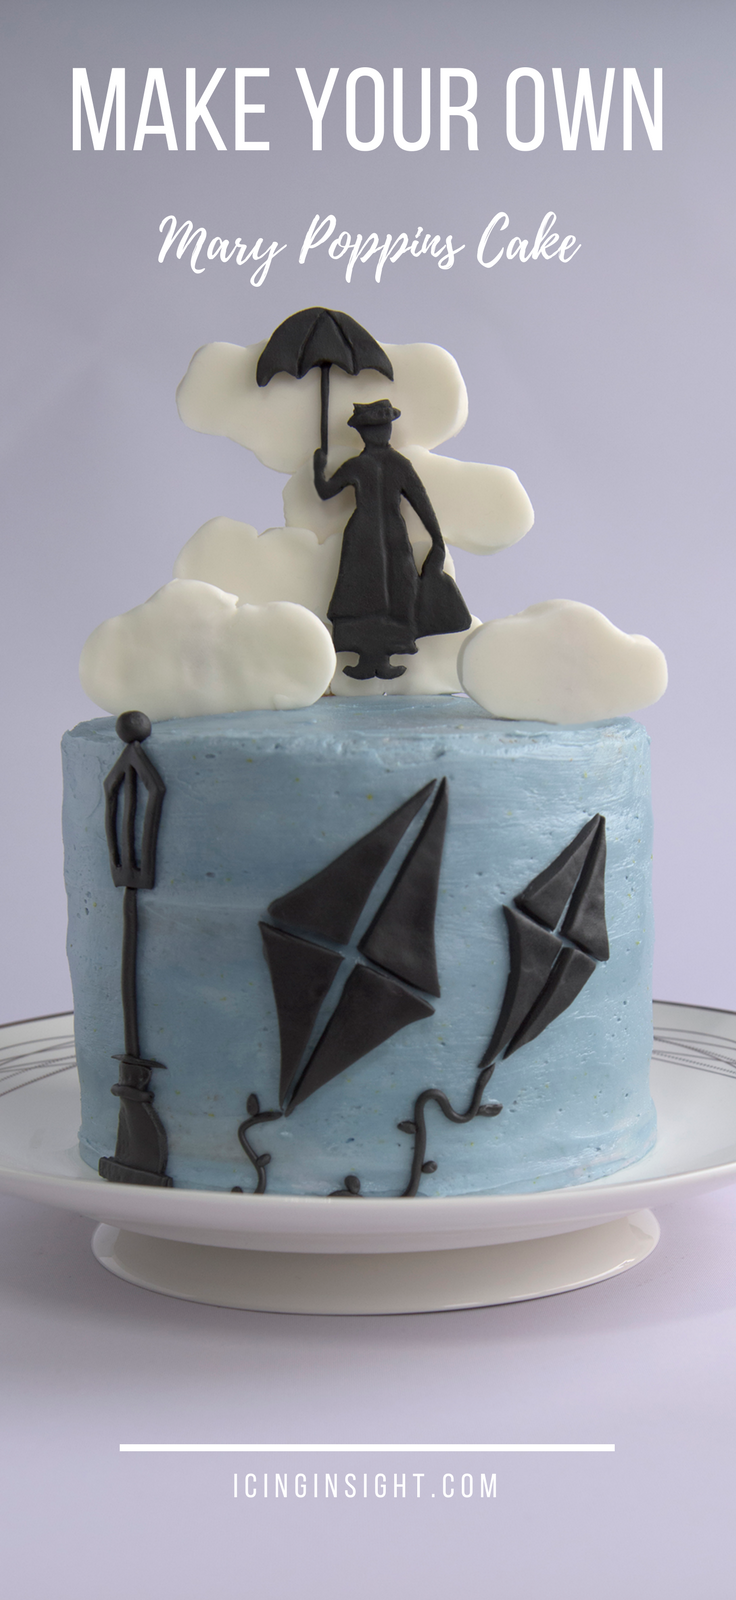 How To Make A Super Mary Poppins Cake with a fondant cake topper, edible clouds and honey, lemon sponge inside